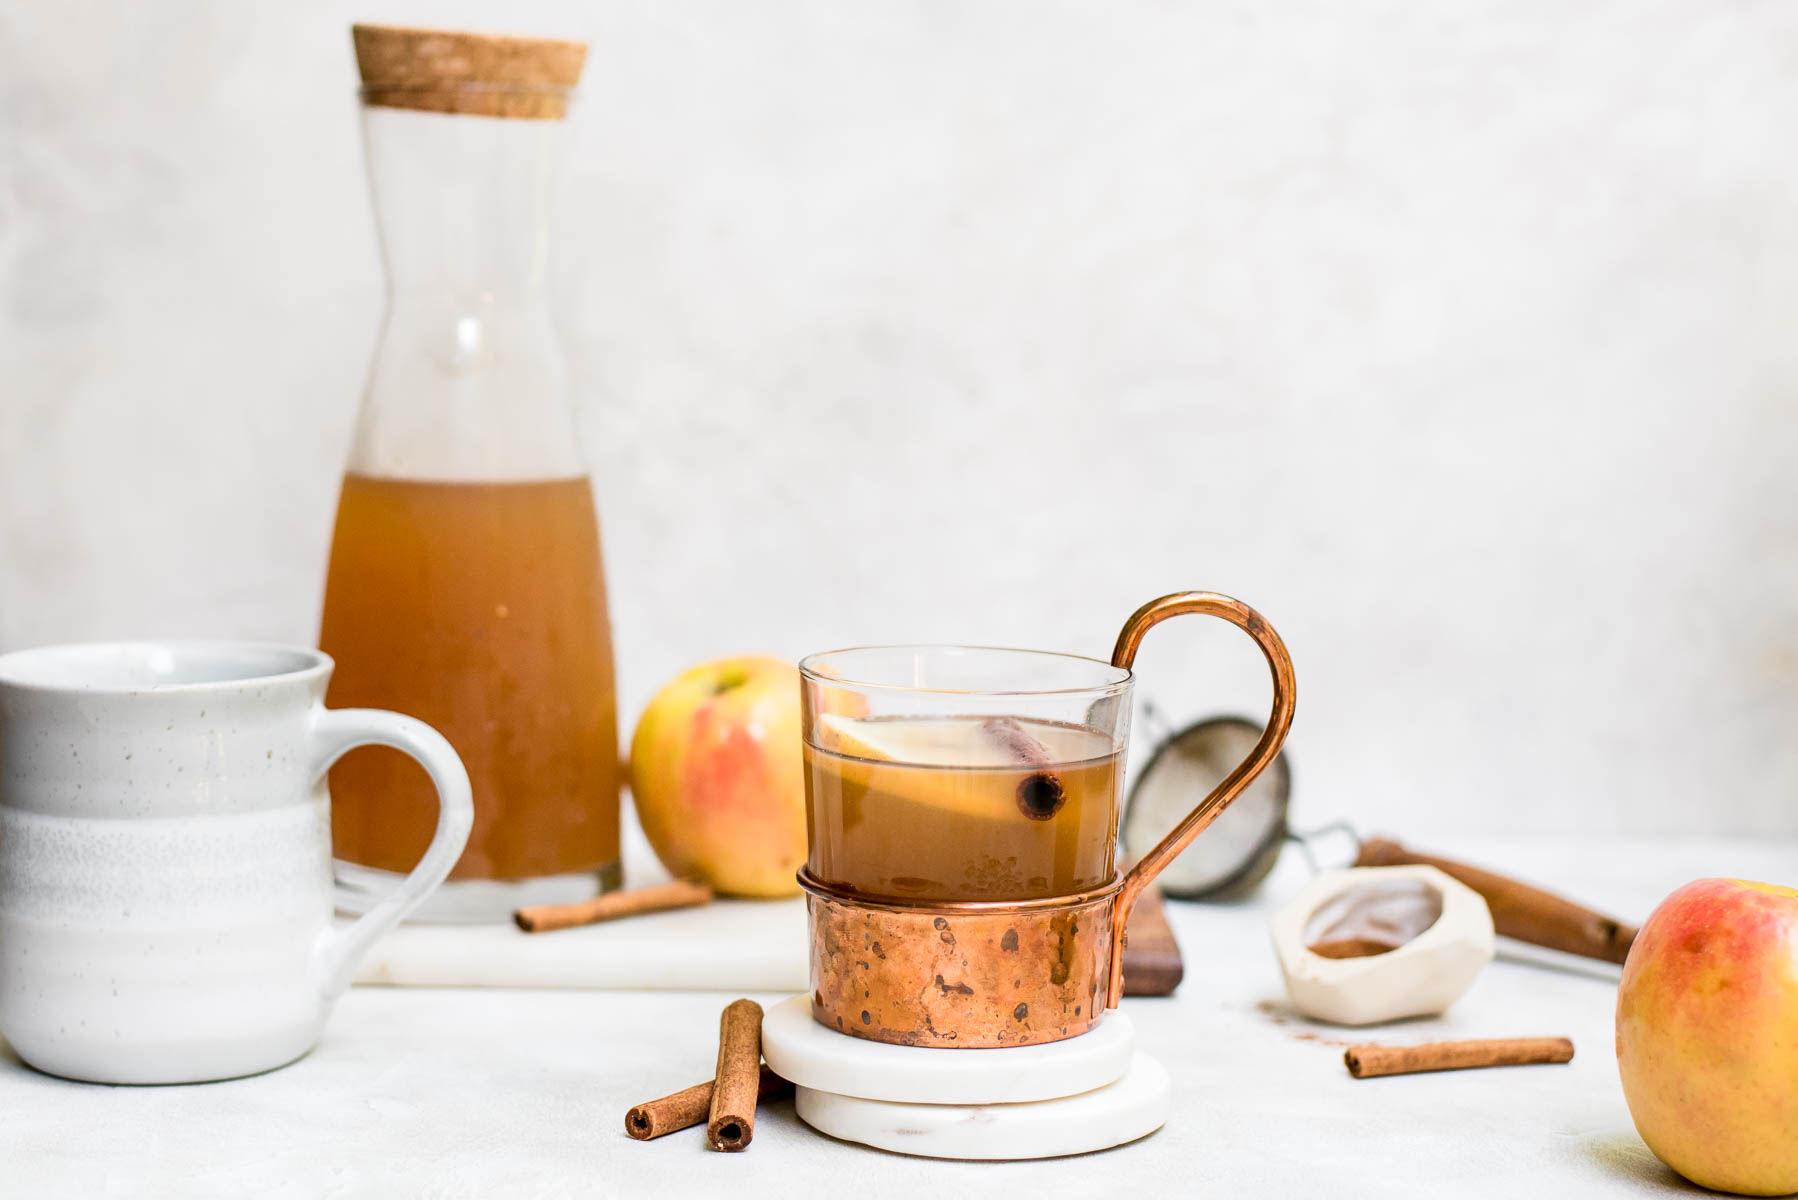 homemade apple cider on counter with white coasters, cinnamon sticks, and copper mug